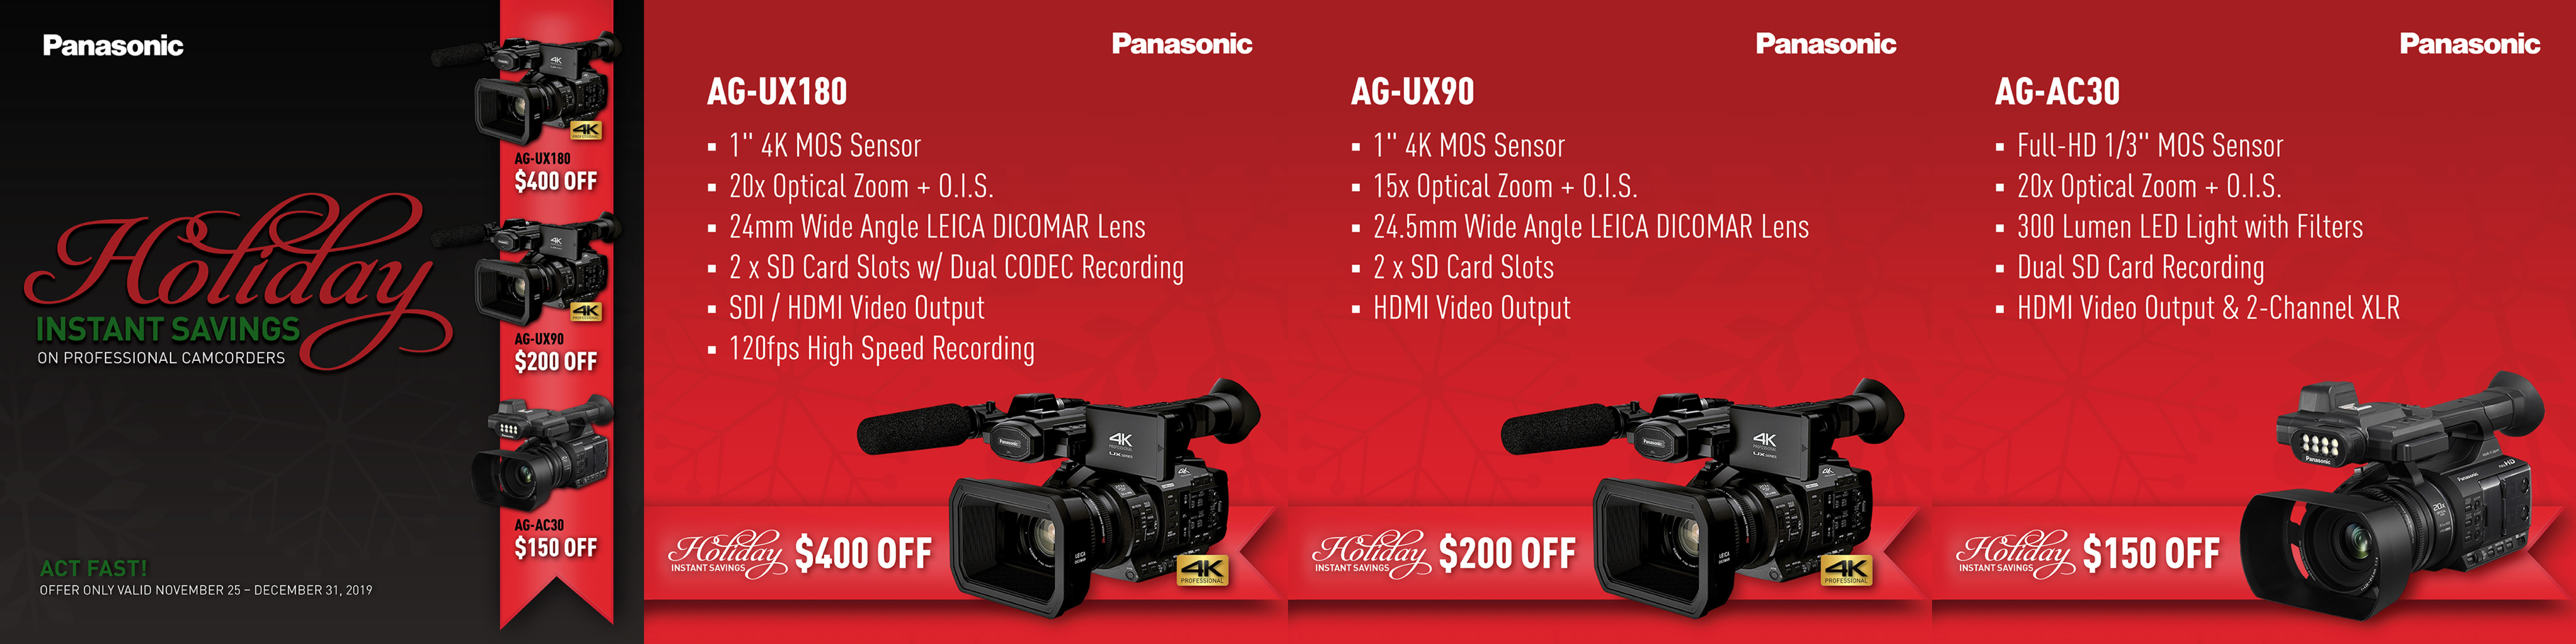 panasonic-black-friday-camcorder-sale-web-full-banner-11252019.jpg